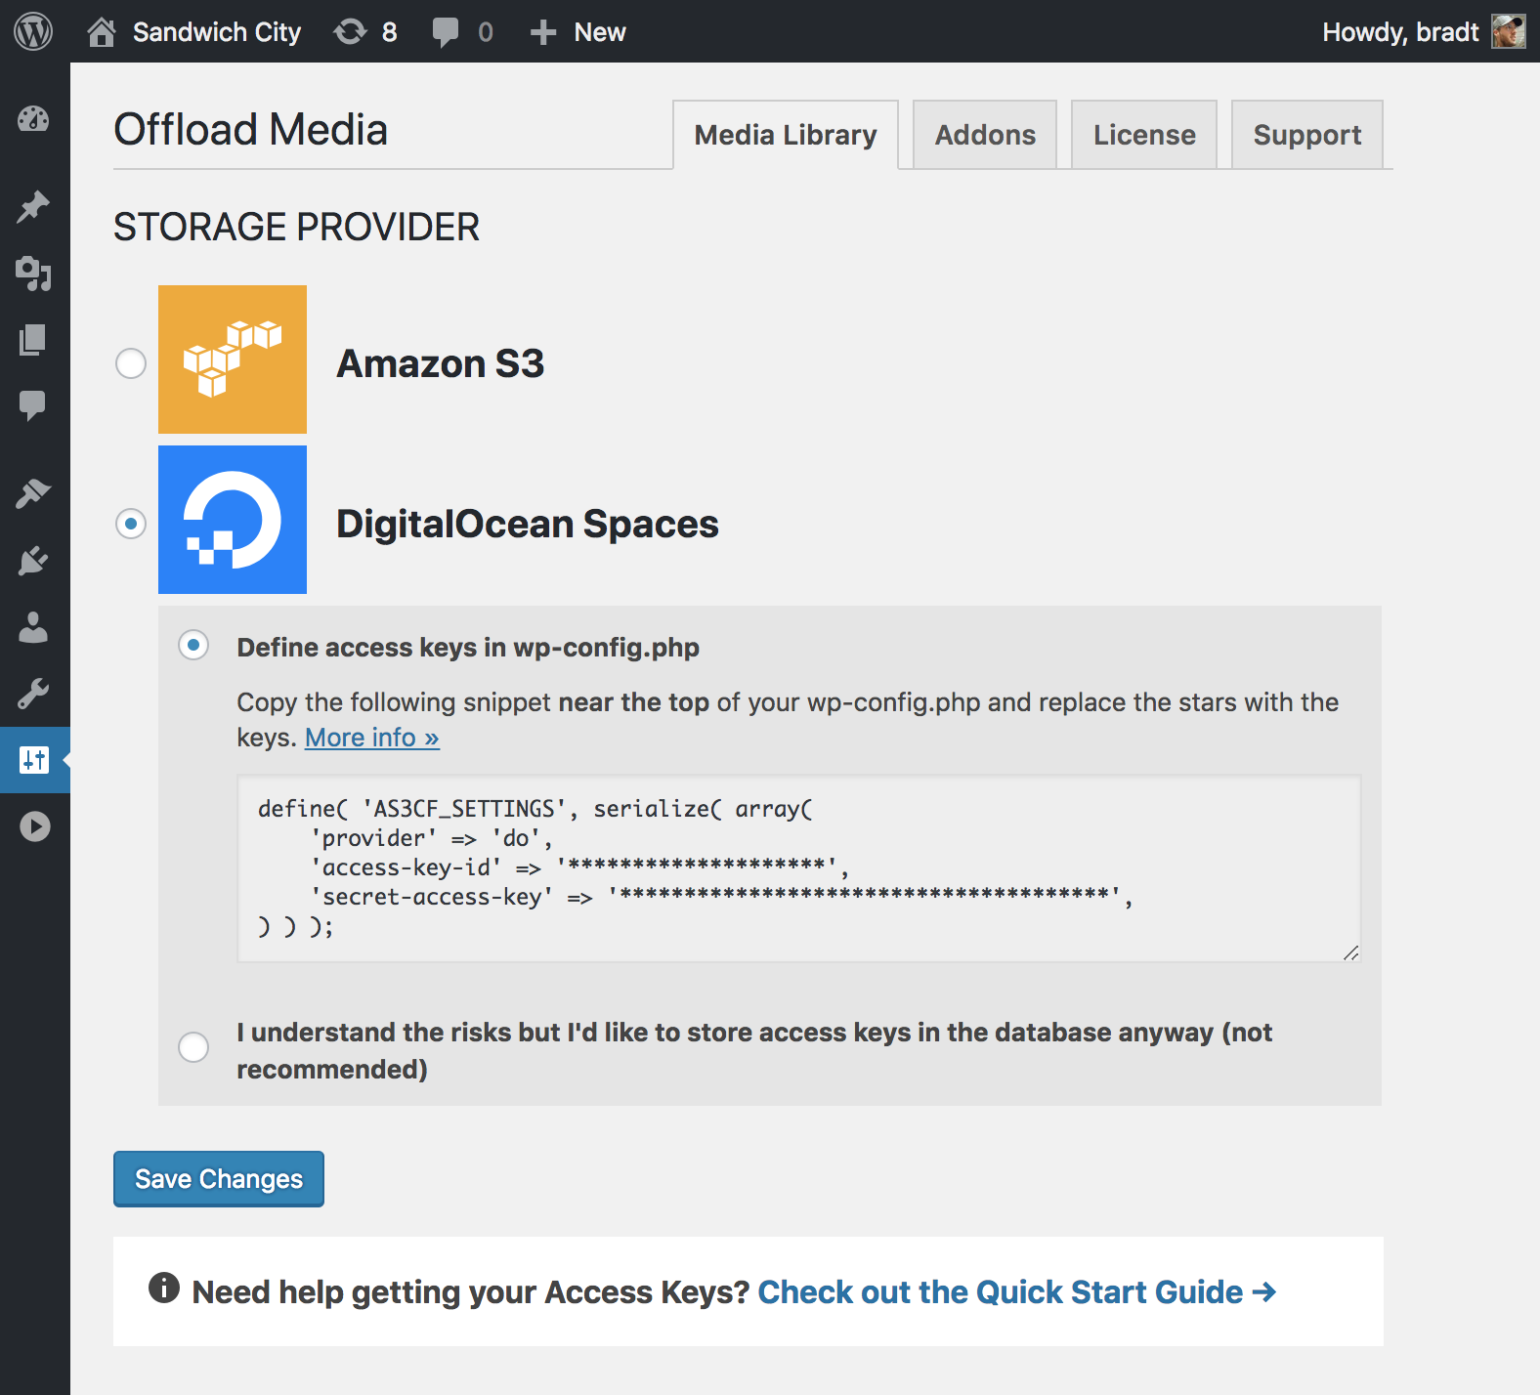 Storage provider screen in WP Offload Media selecting DigitalOcean Spaces